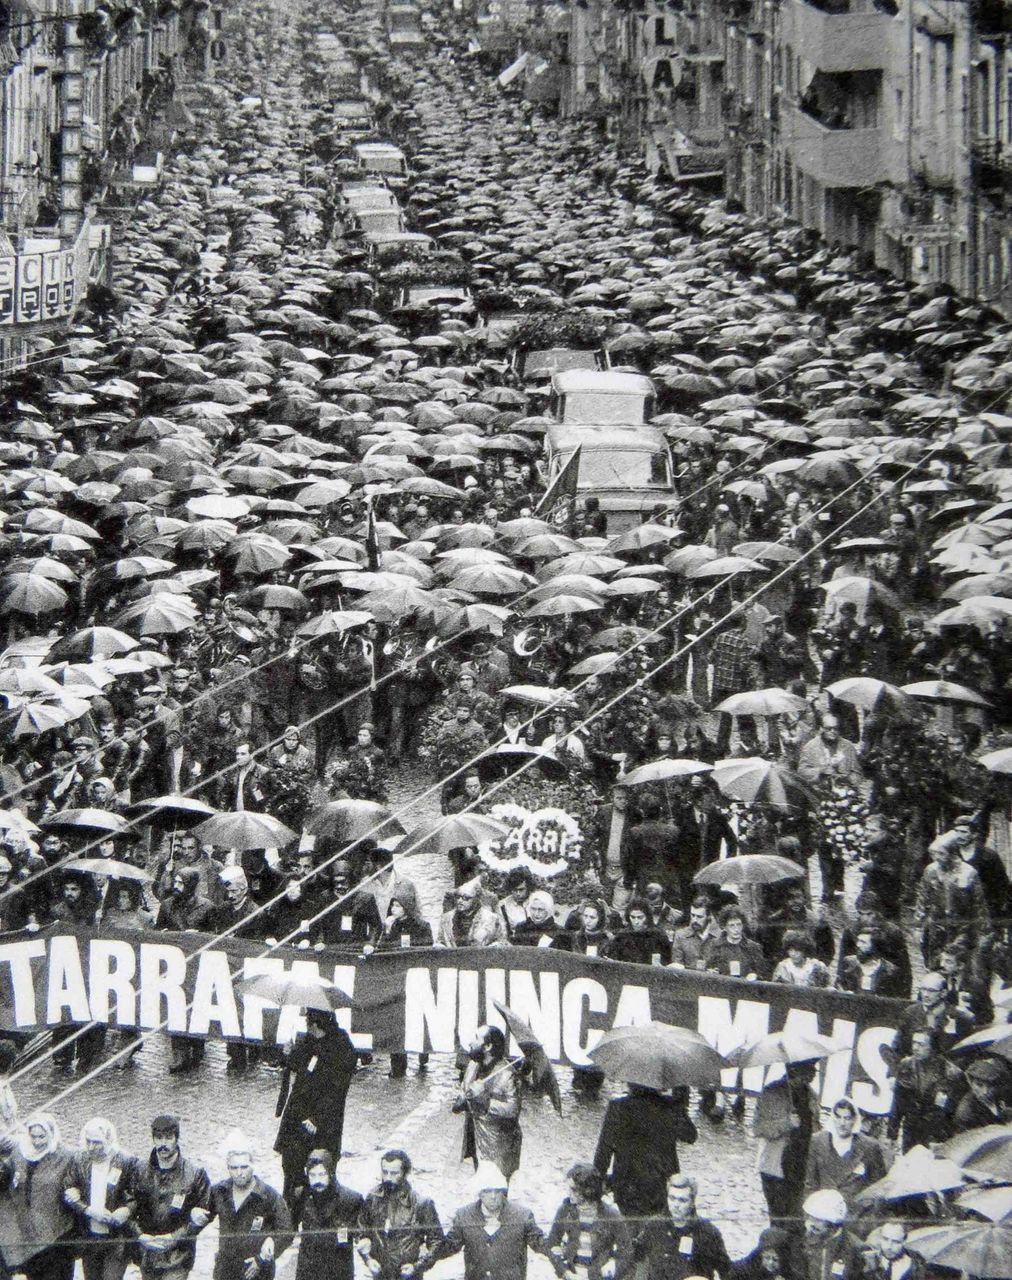 Demonstration during the repatriation of the Tarrafal dead, 1978